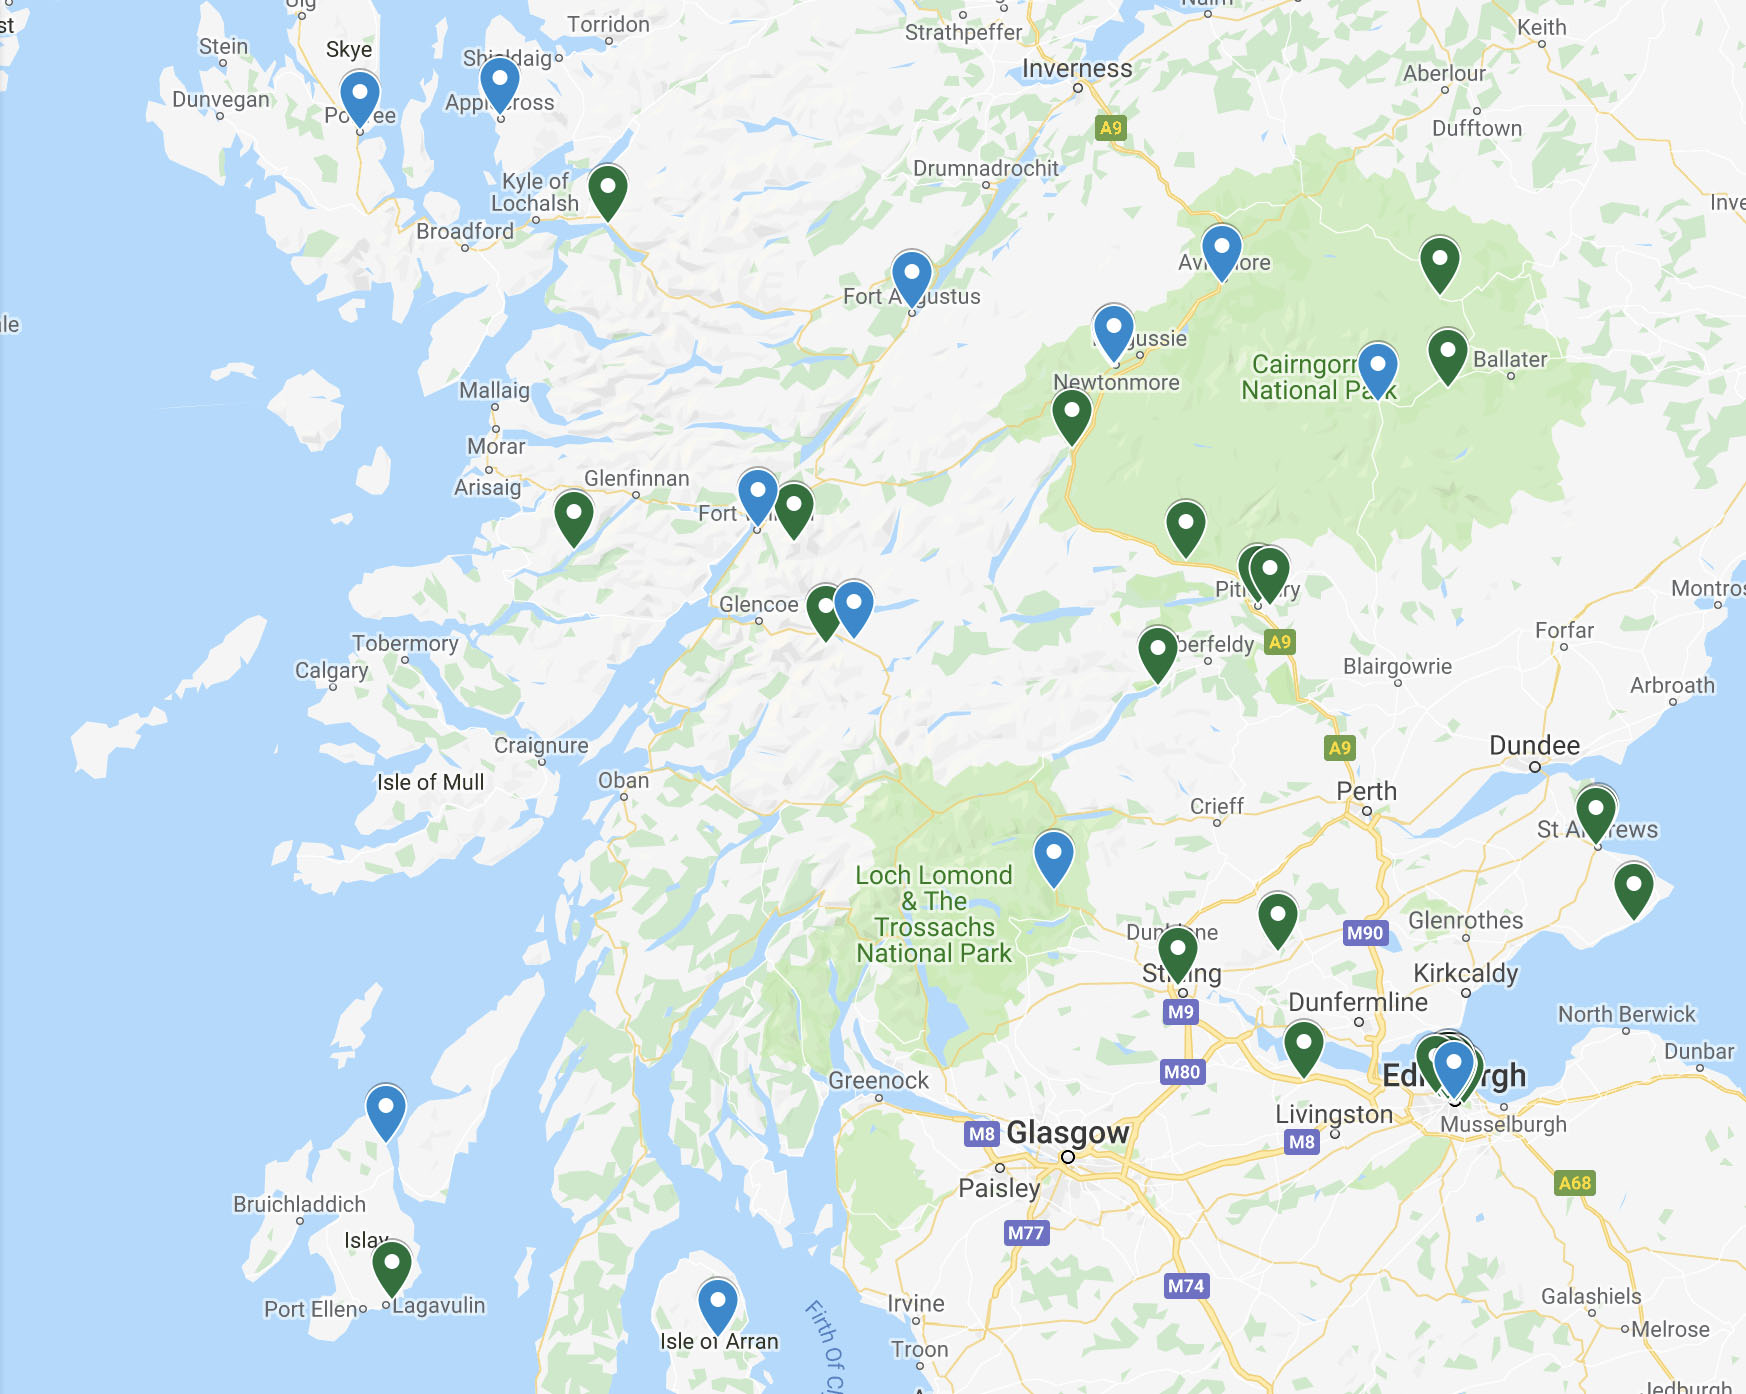 Places to visit and stay in Scotland - Check out Matt's map of good places.